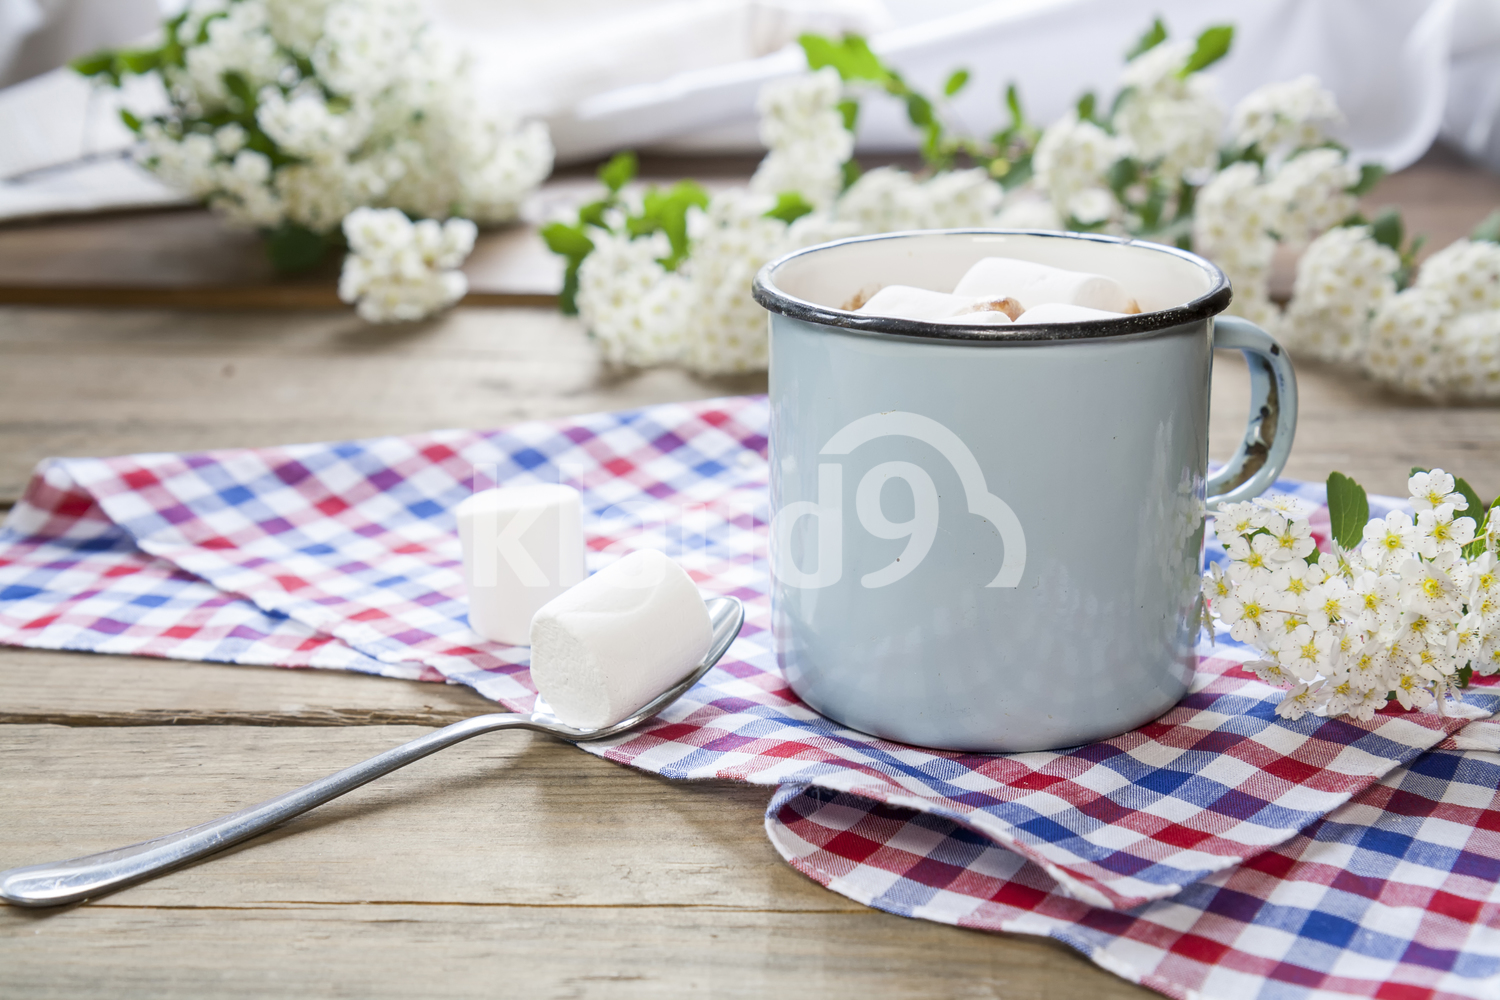 Hot cocoa with marshmallows in blue cup